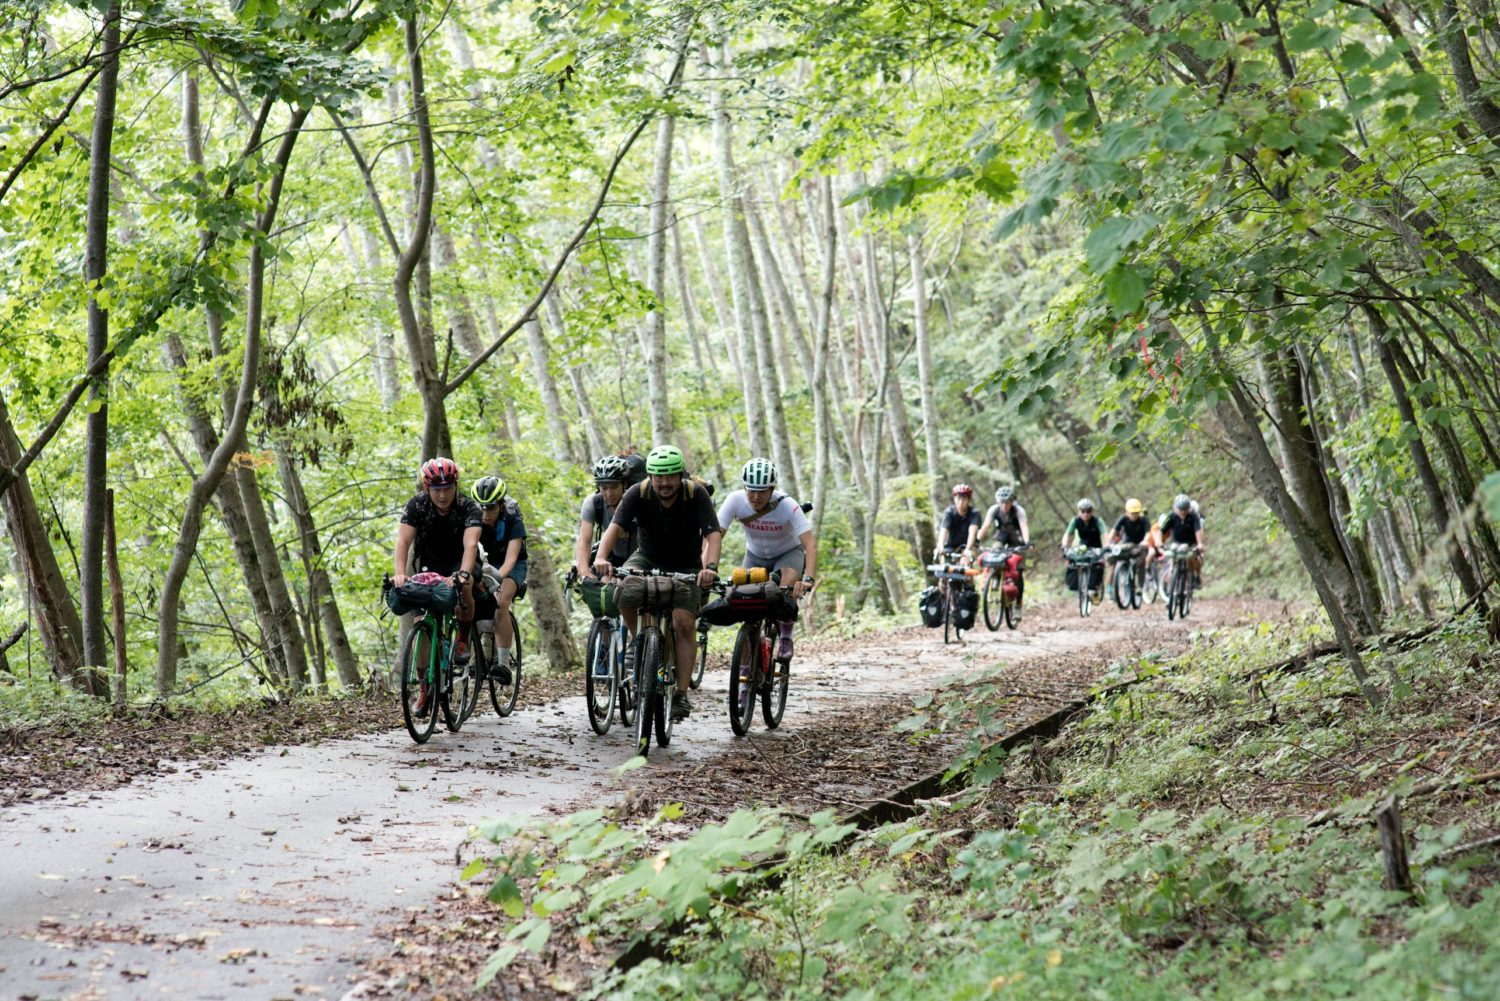 RIDEALIVE in 山梨 Day1